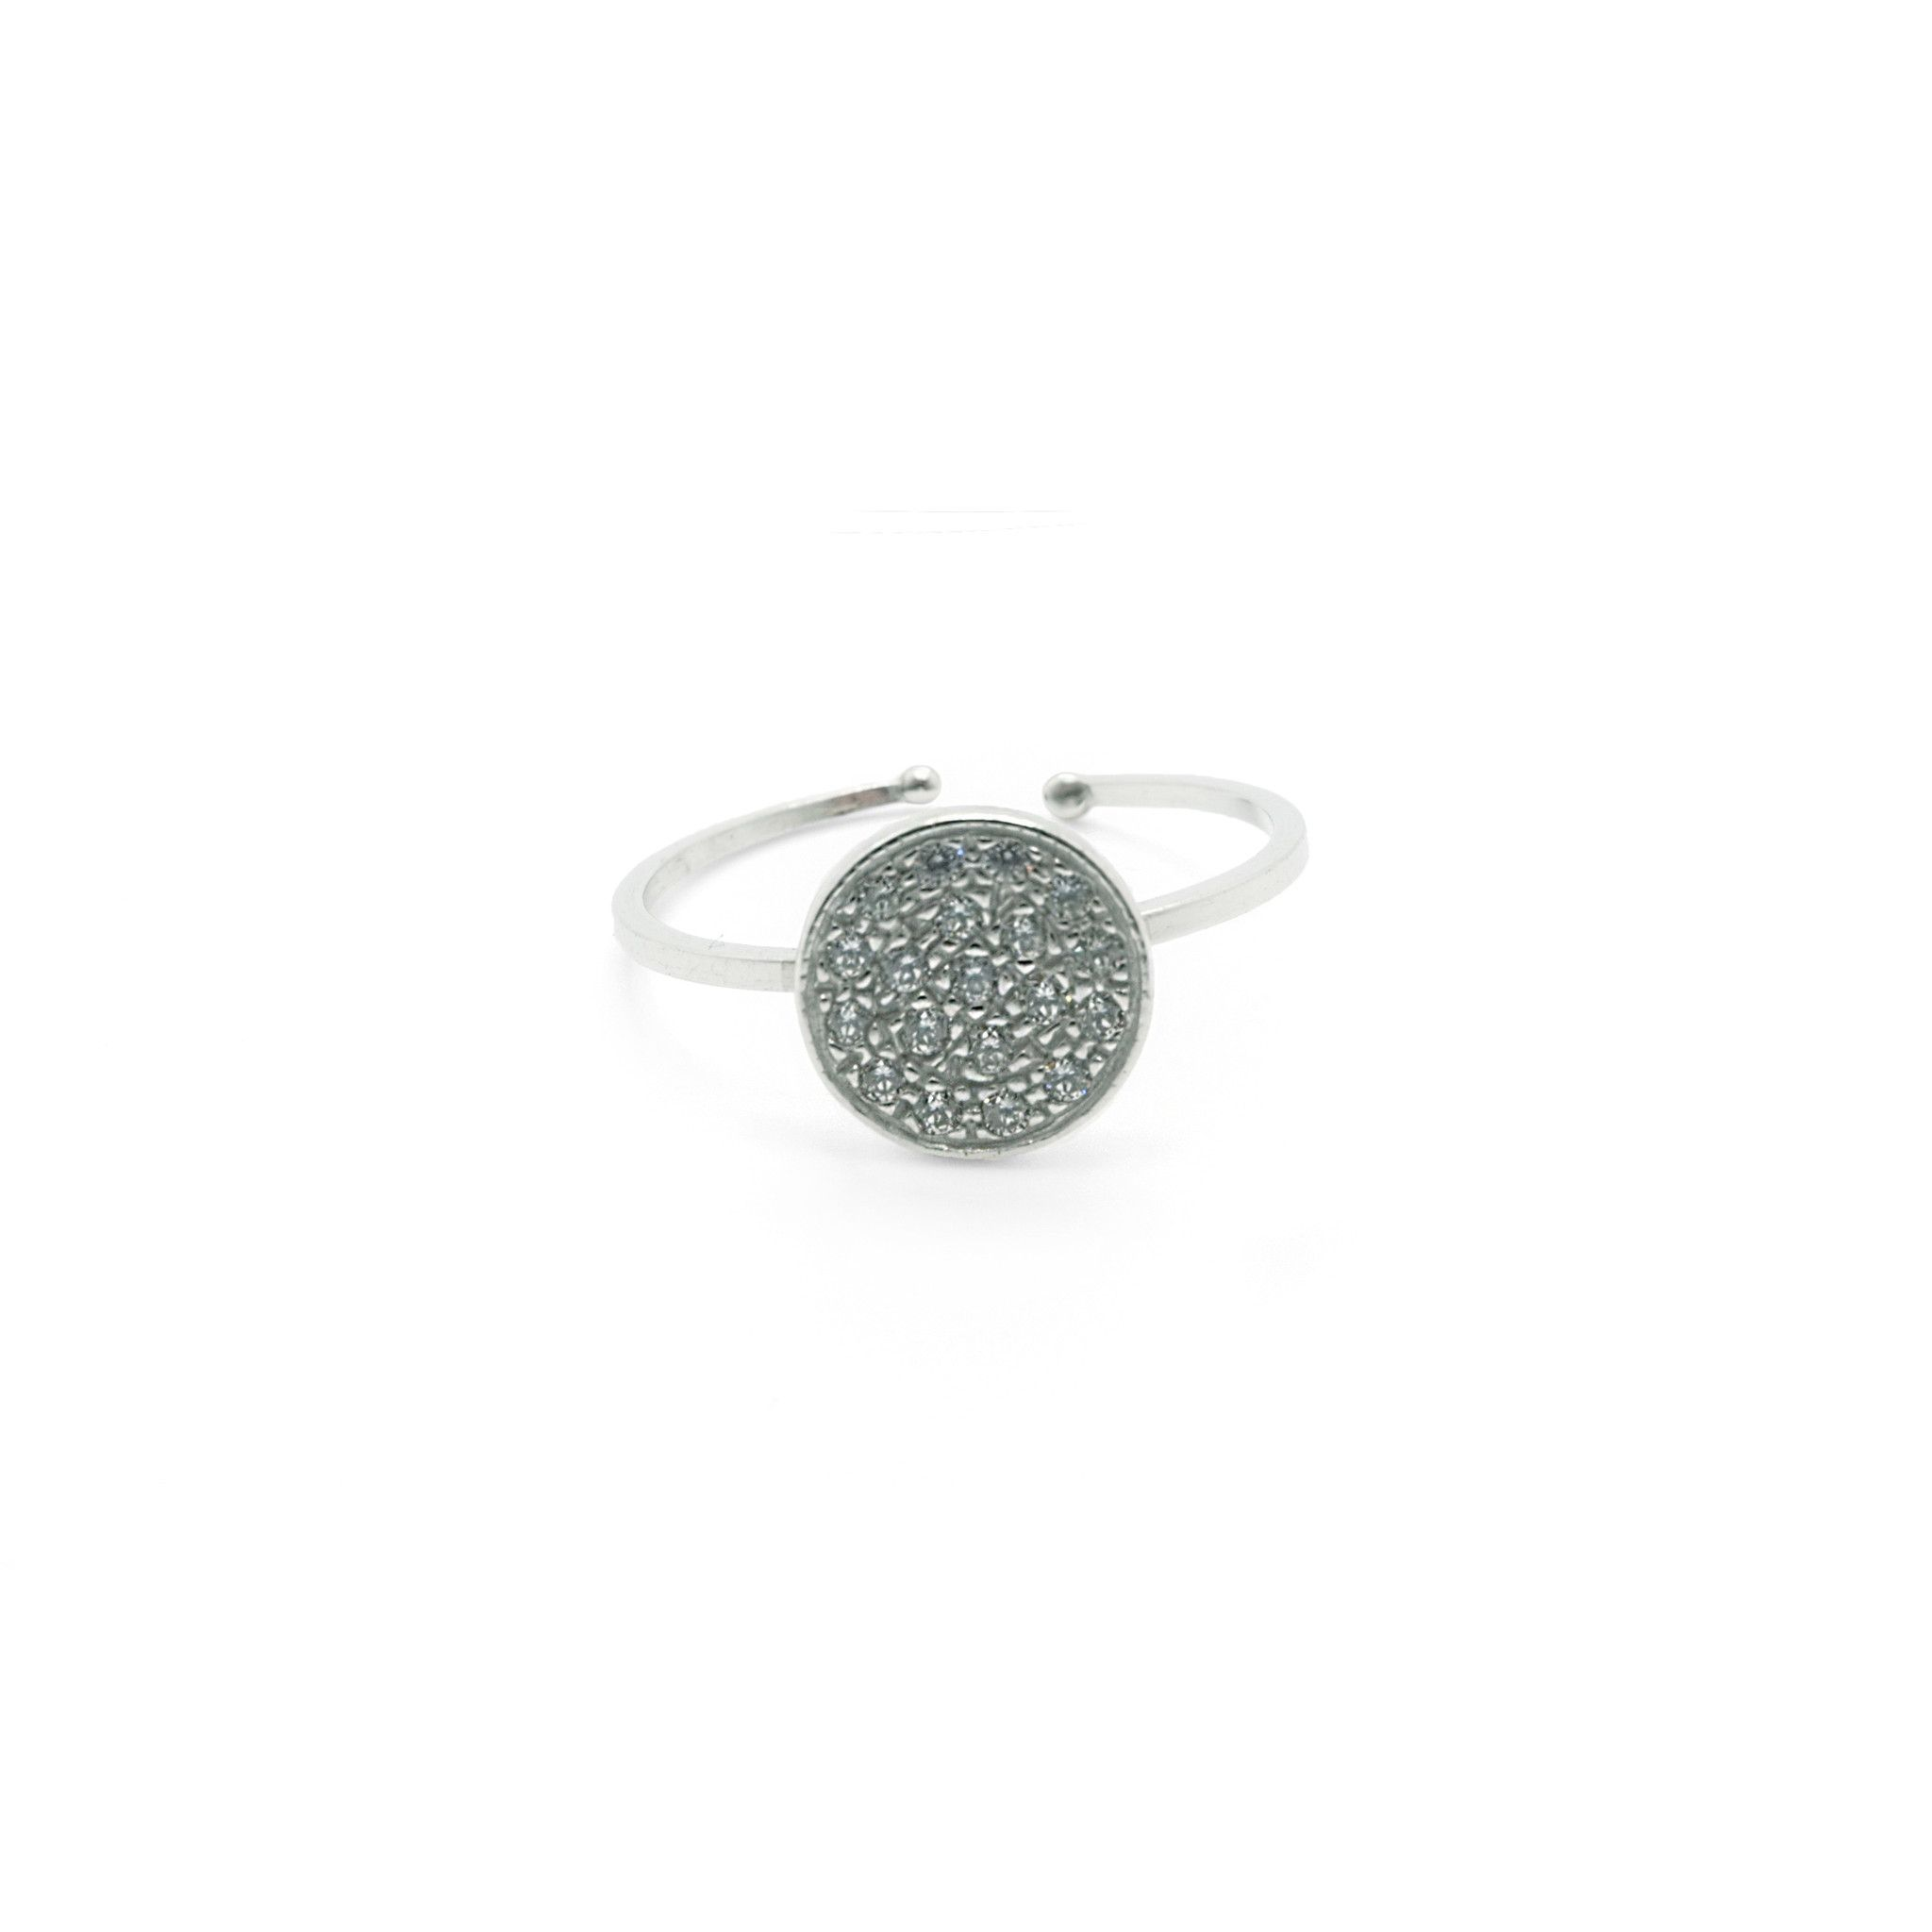 Arabesque Silver with Zircons, Ring